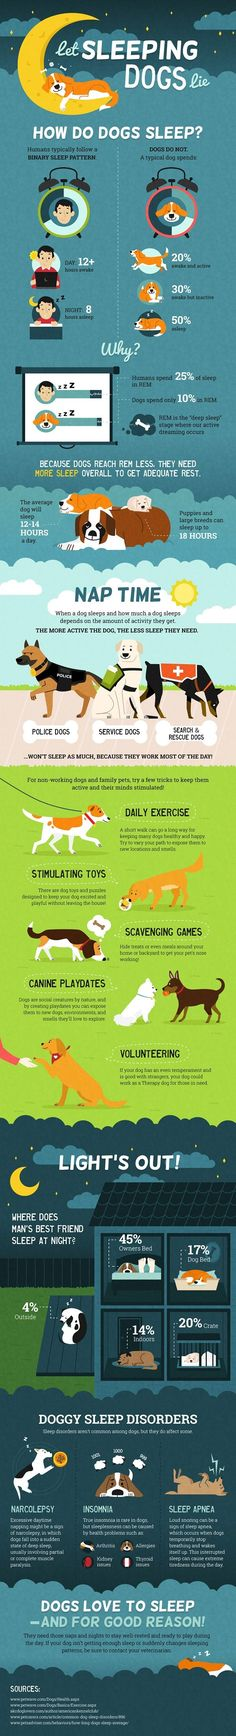 How Do Dogs Sleep by DailyDogTag via barkpost #Infographic #Dogs #Sleep